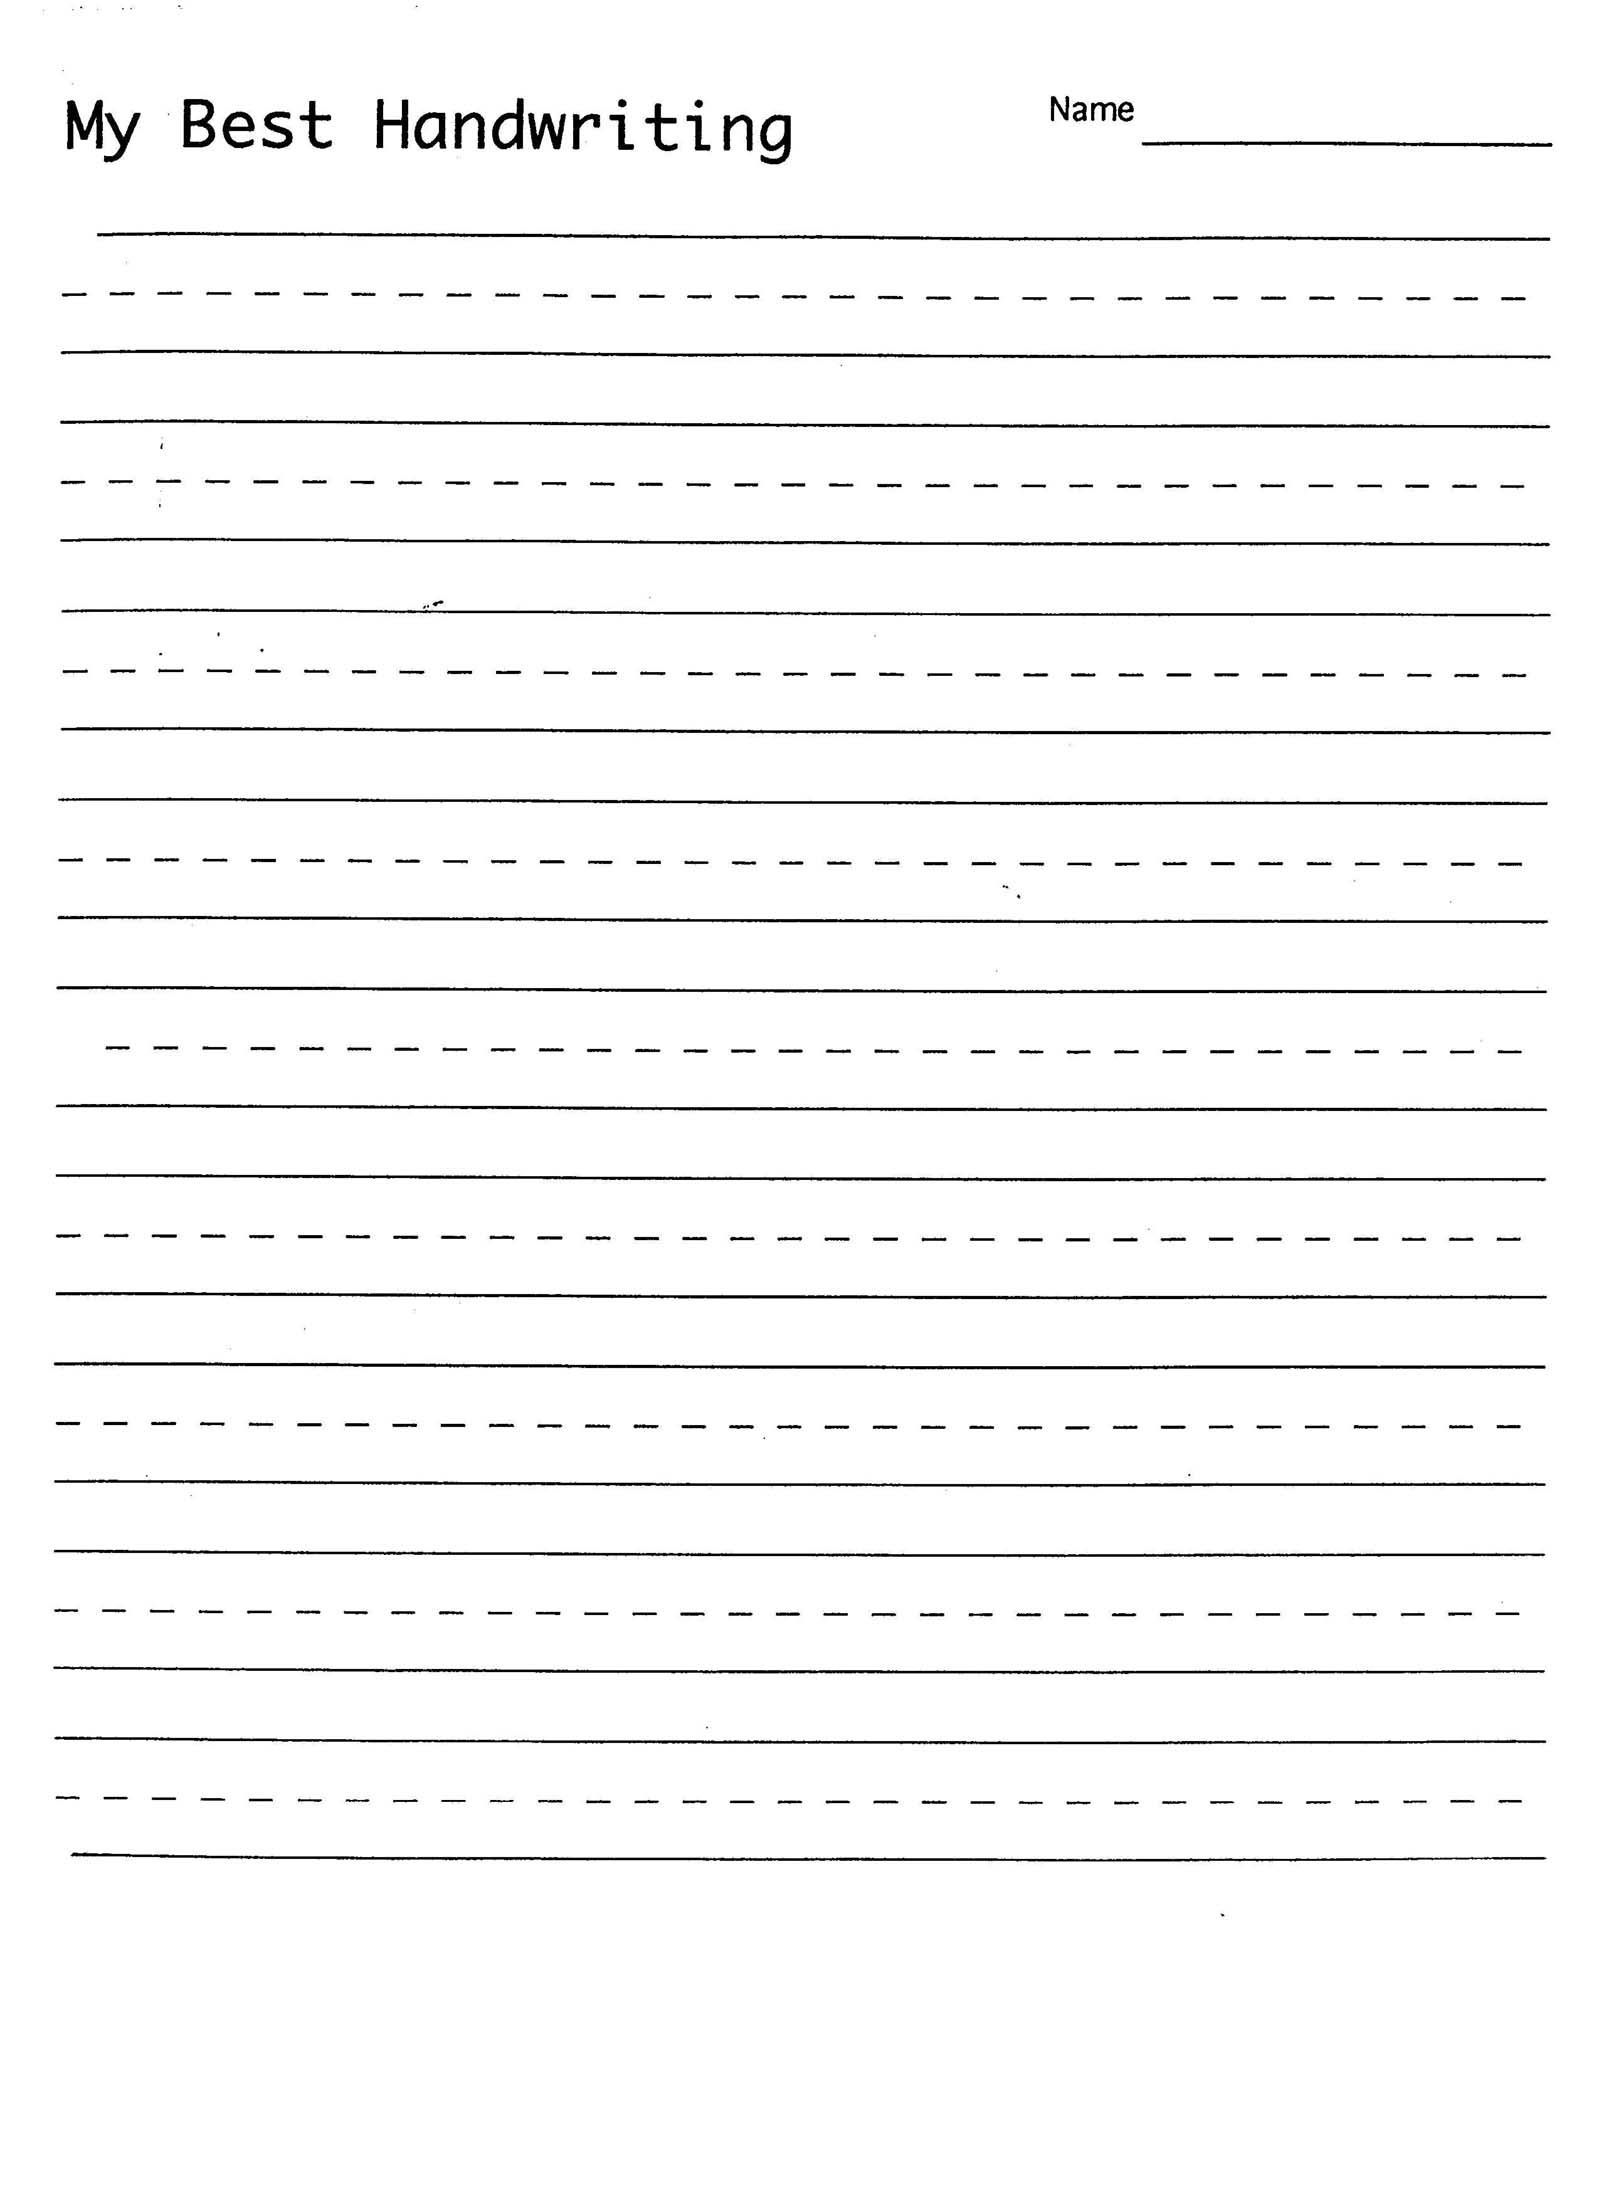 Handwriting Practice Worksheets For Learning Handwriting